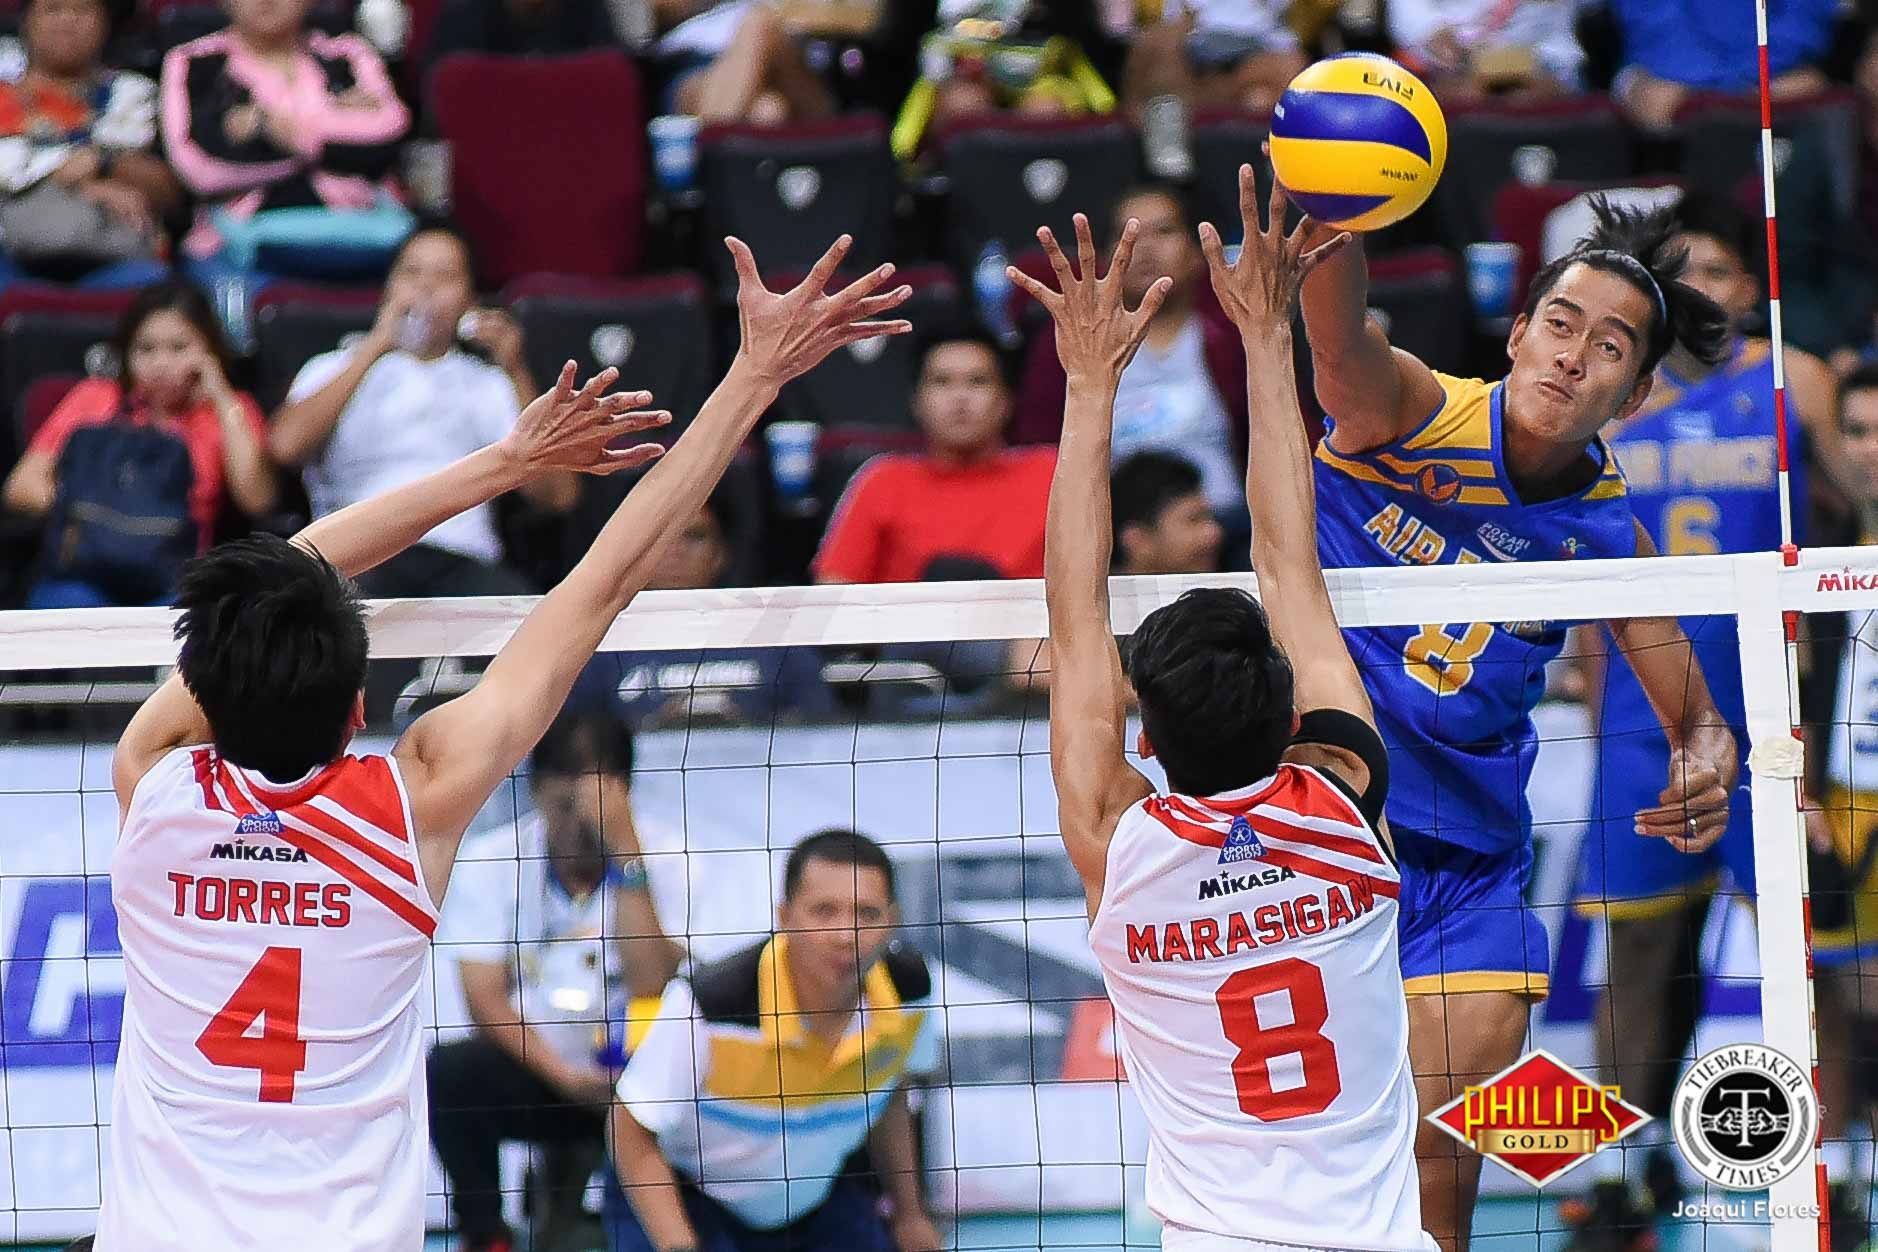 Tiebreaker Times Air Force musters late barrage to down Cignal HD in Game One News PVL Volleyball  Ysay Marasigan Ricky Marcos Rhovyl Verayo RanRan Abdilla Pitrus De Ocampo Oliver Almadro Marck Espejo Cignal HD Spikers Bryan Bagunas Air Force Jet Spikers 2018 PVL Season 2018 PVL Men's Reinforced Conference